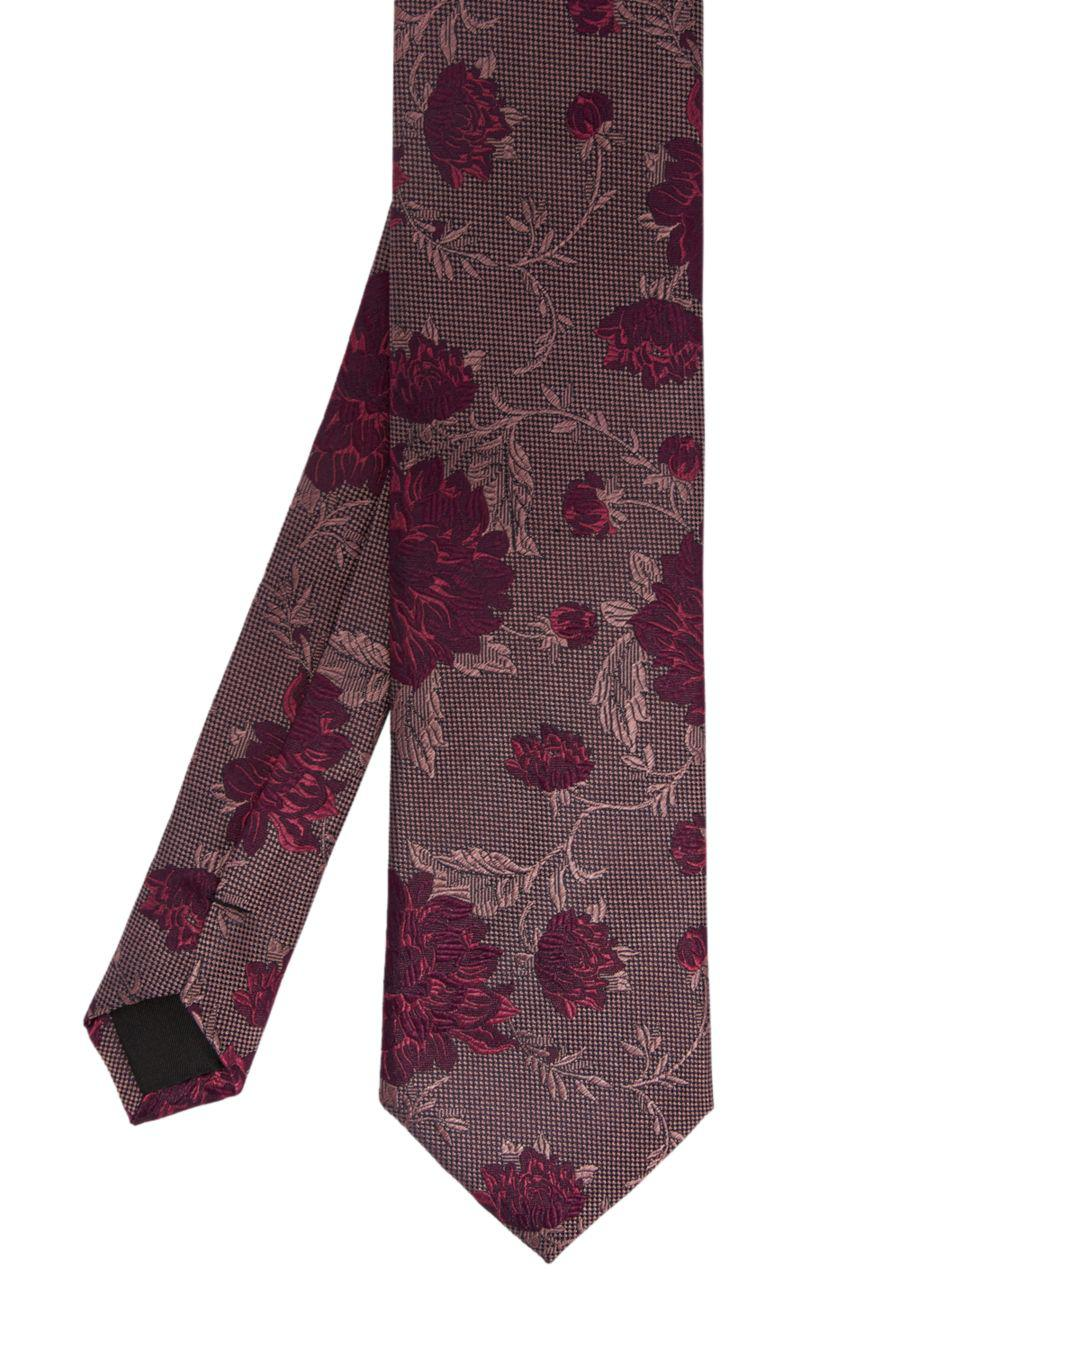 10f89250 Lyst - Ted Baker Floral Jacquard Silk Tie in Pink for Men - Save ...